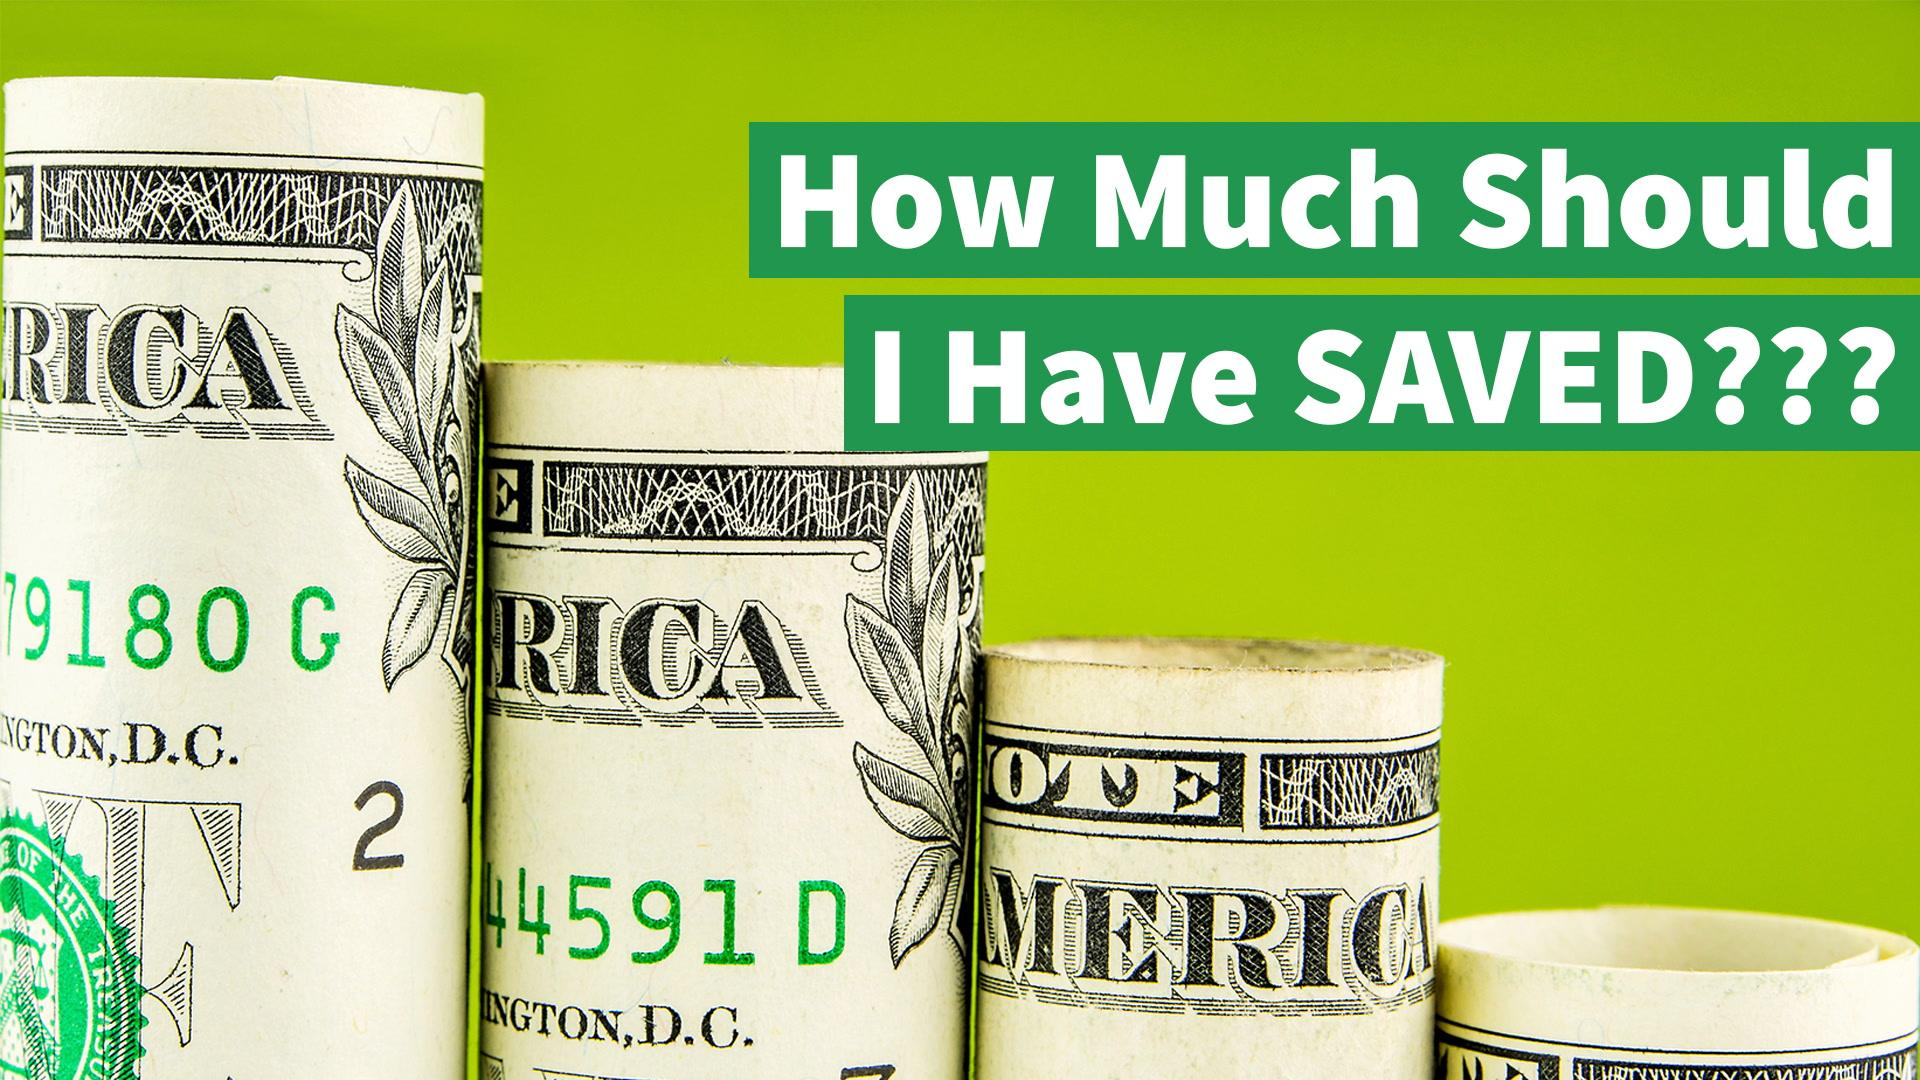 Here's How Much You Should Have Saved and How to Catch Up